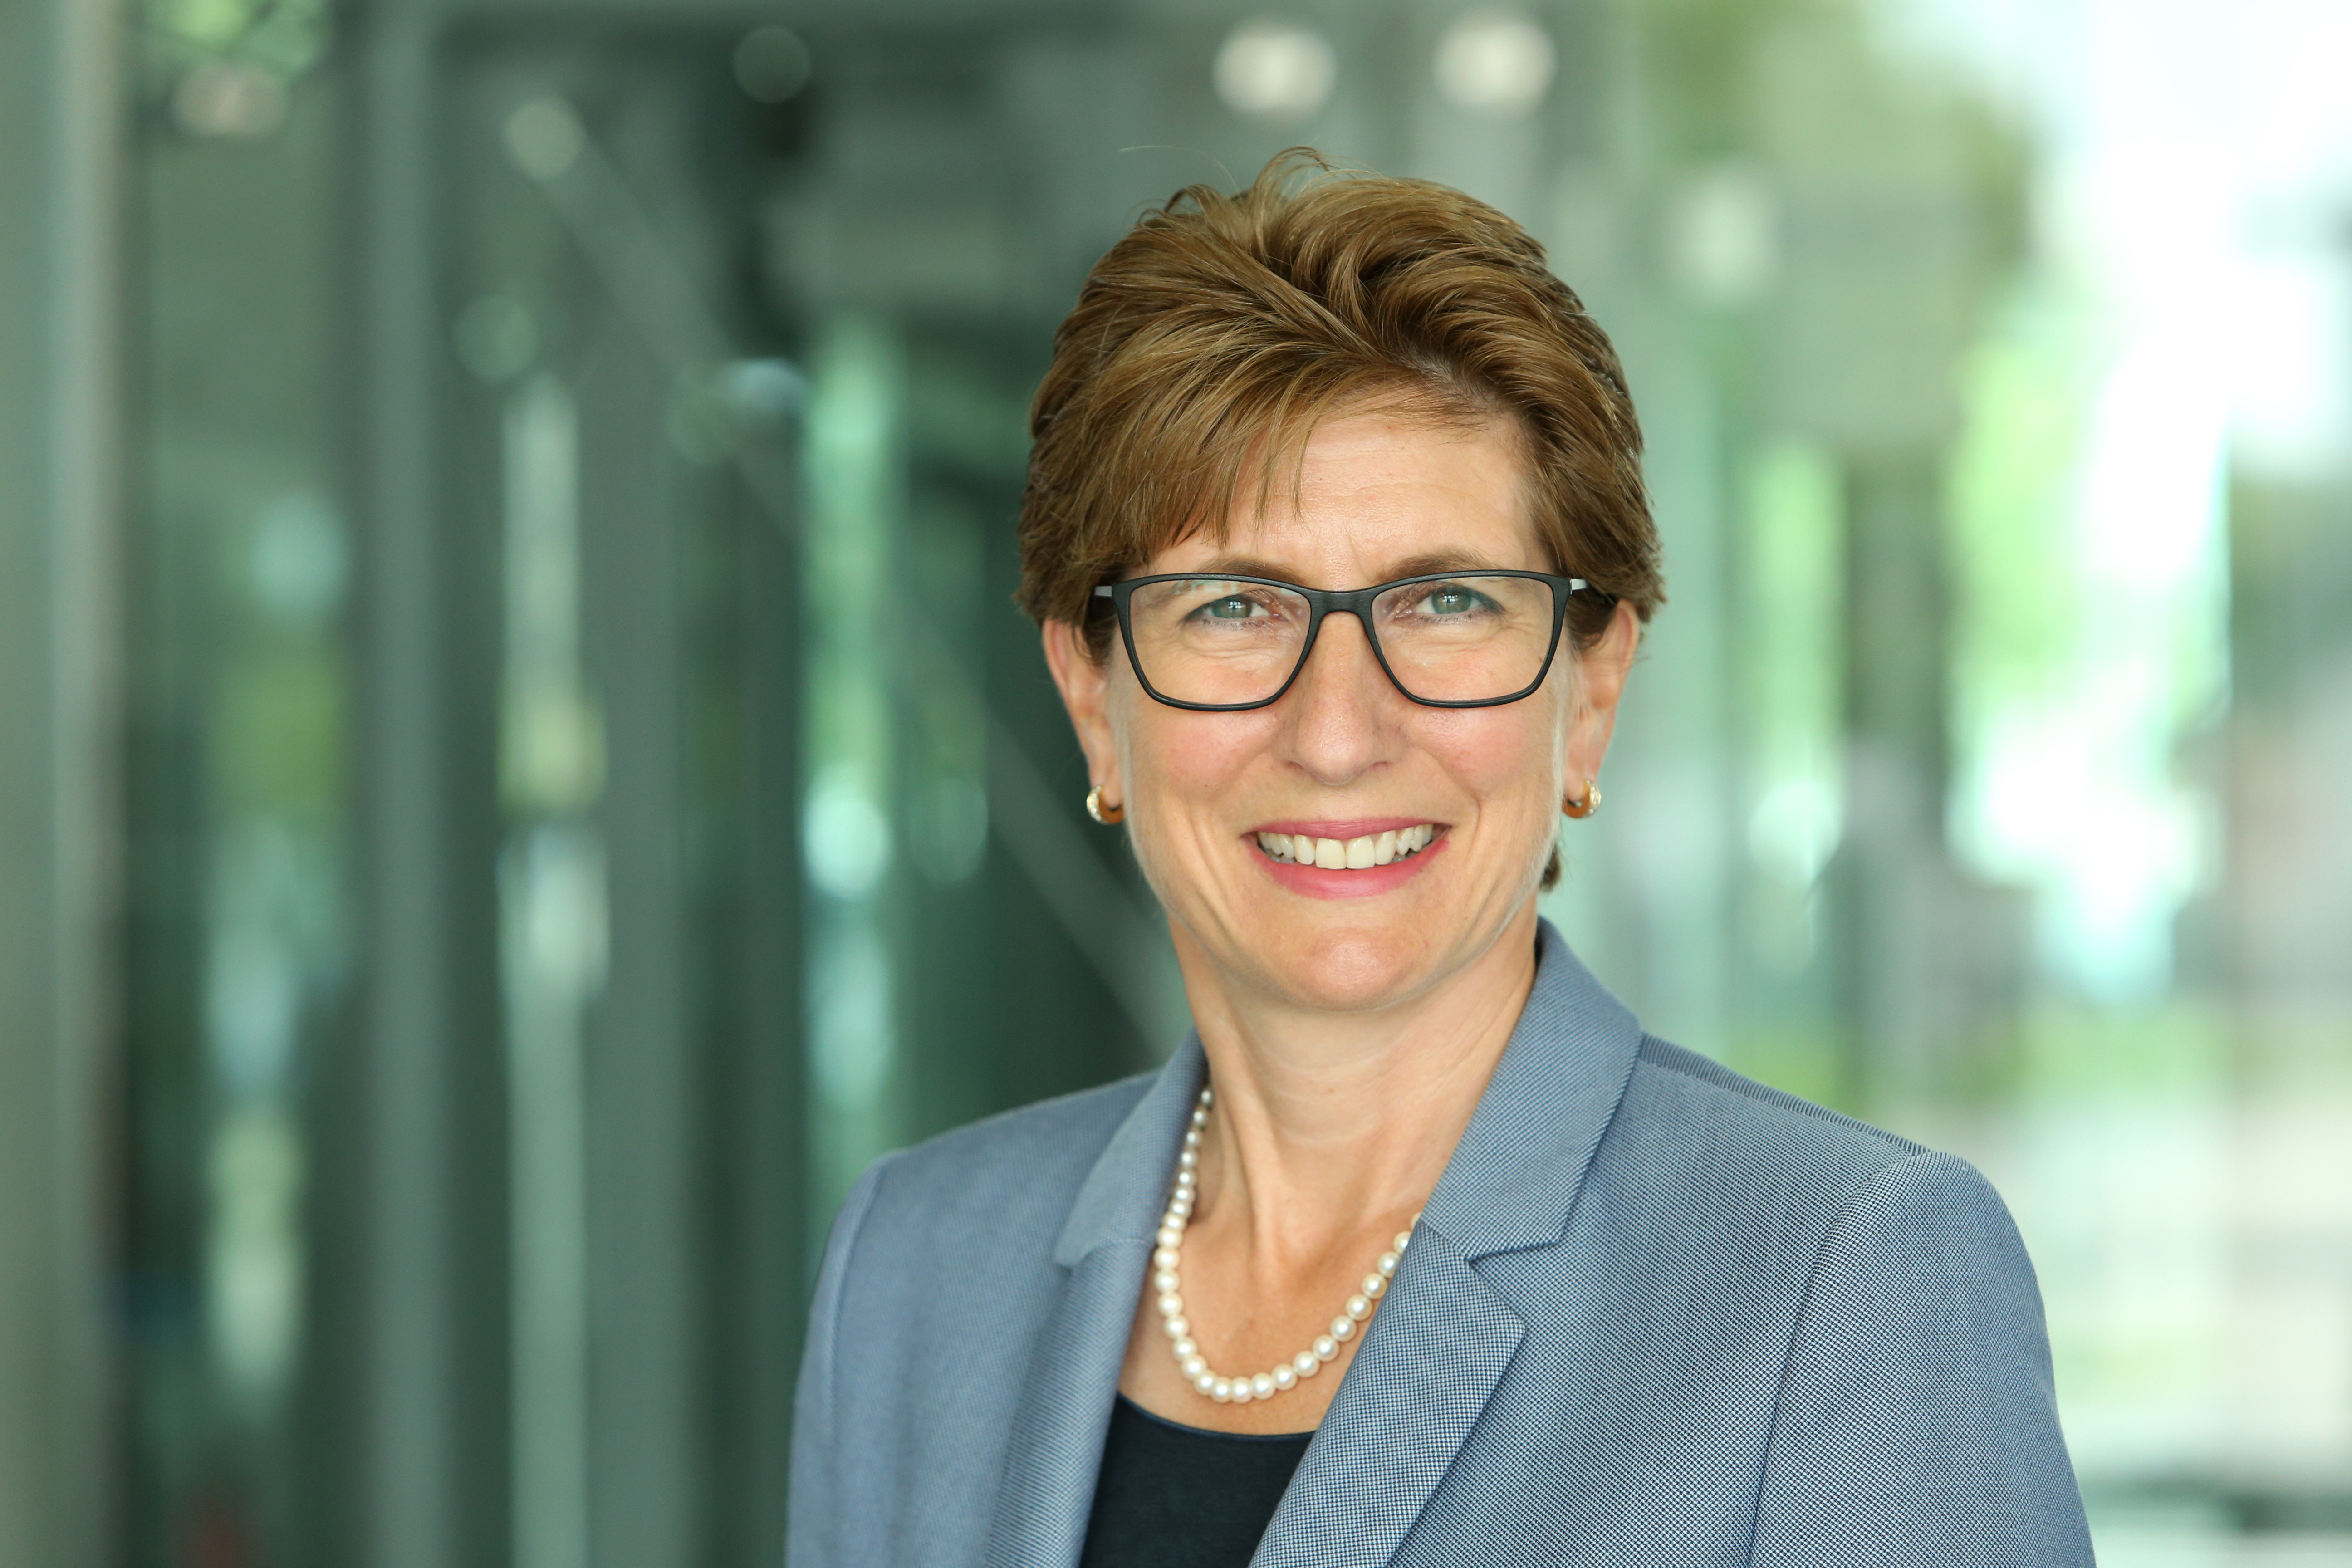 CV of Ilka Horstmeier, as of 1 November 2019 Member of the Board of Management of BMW AG, Human Resources, Labour Relations Director